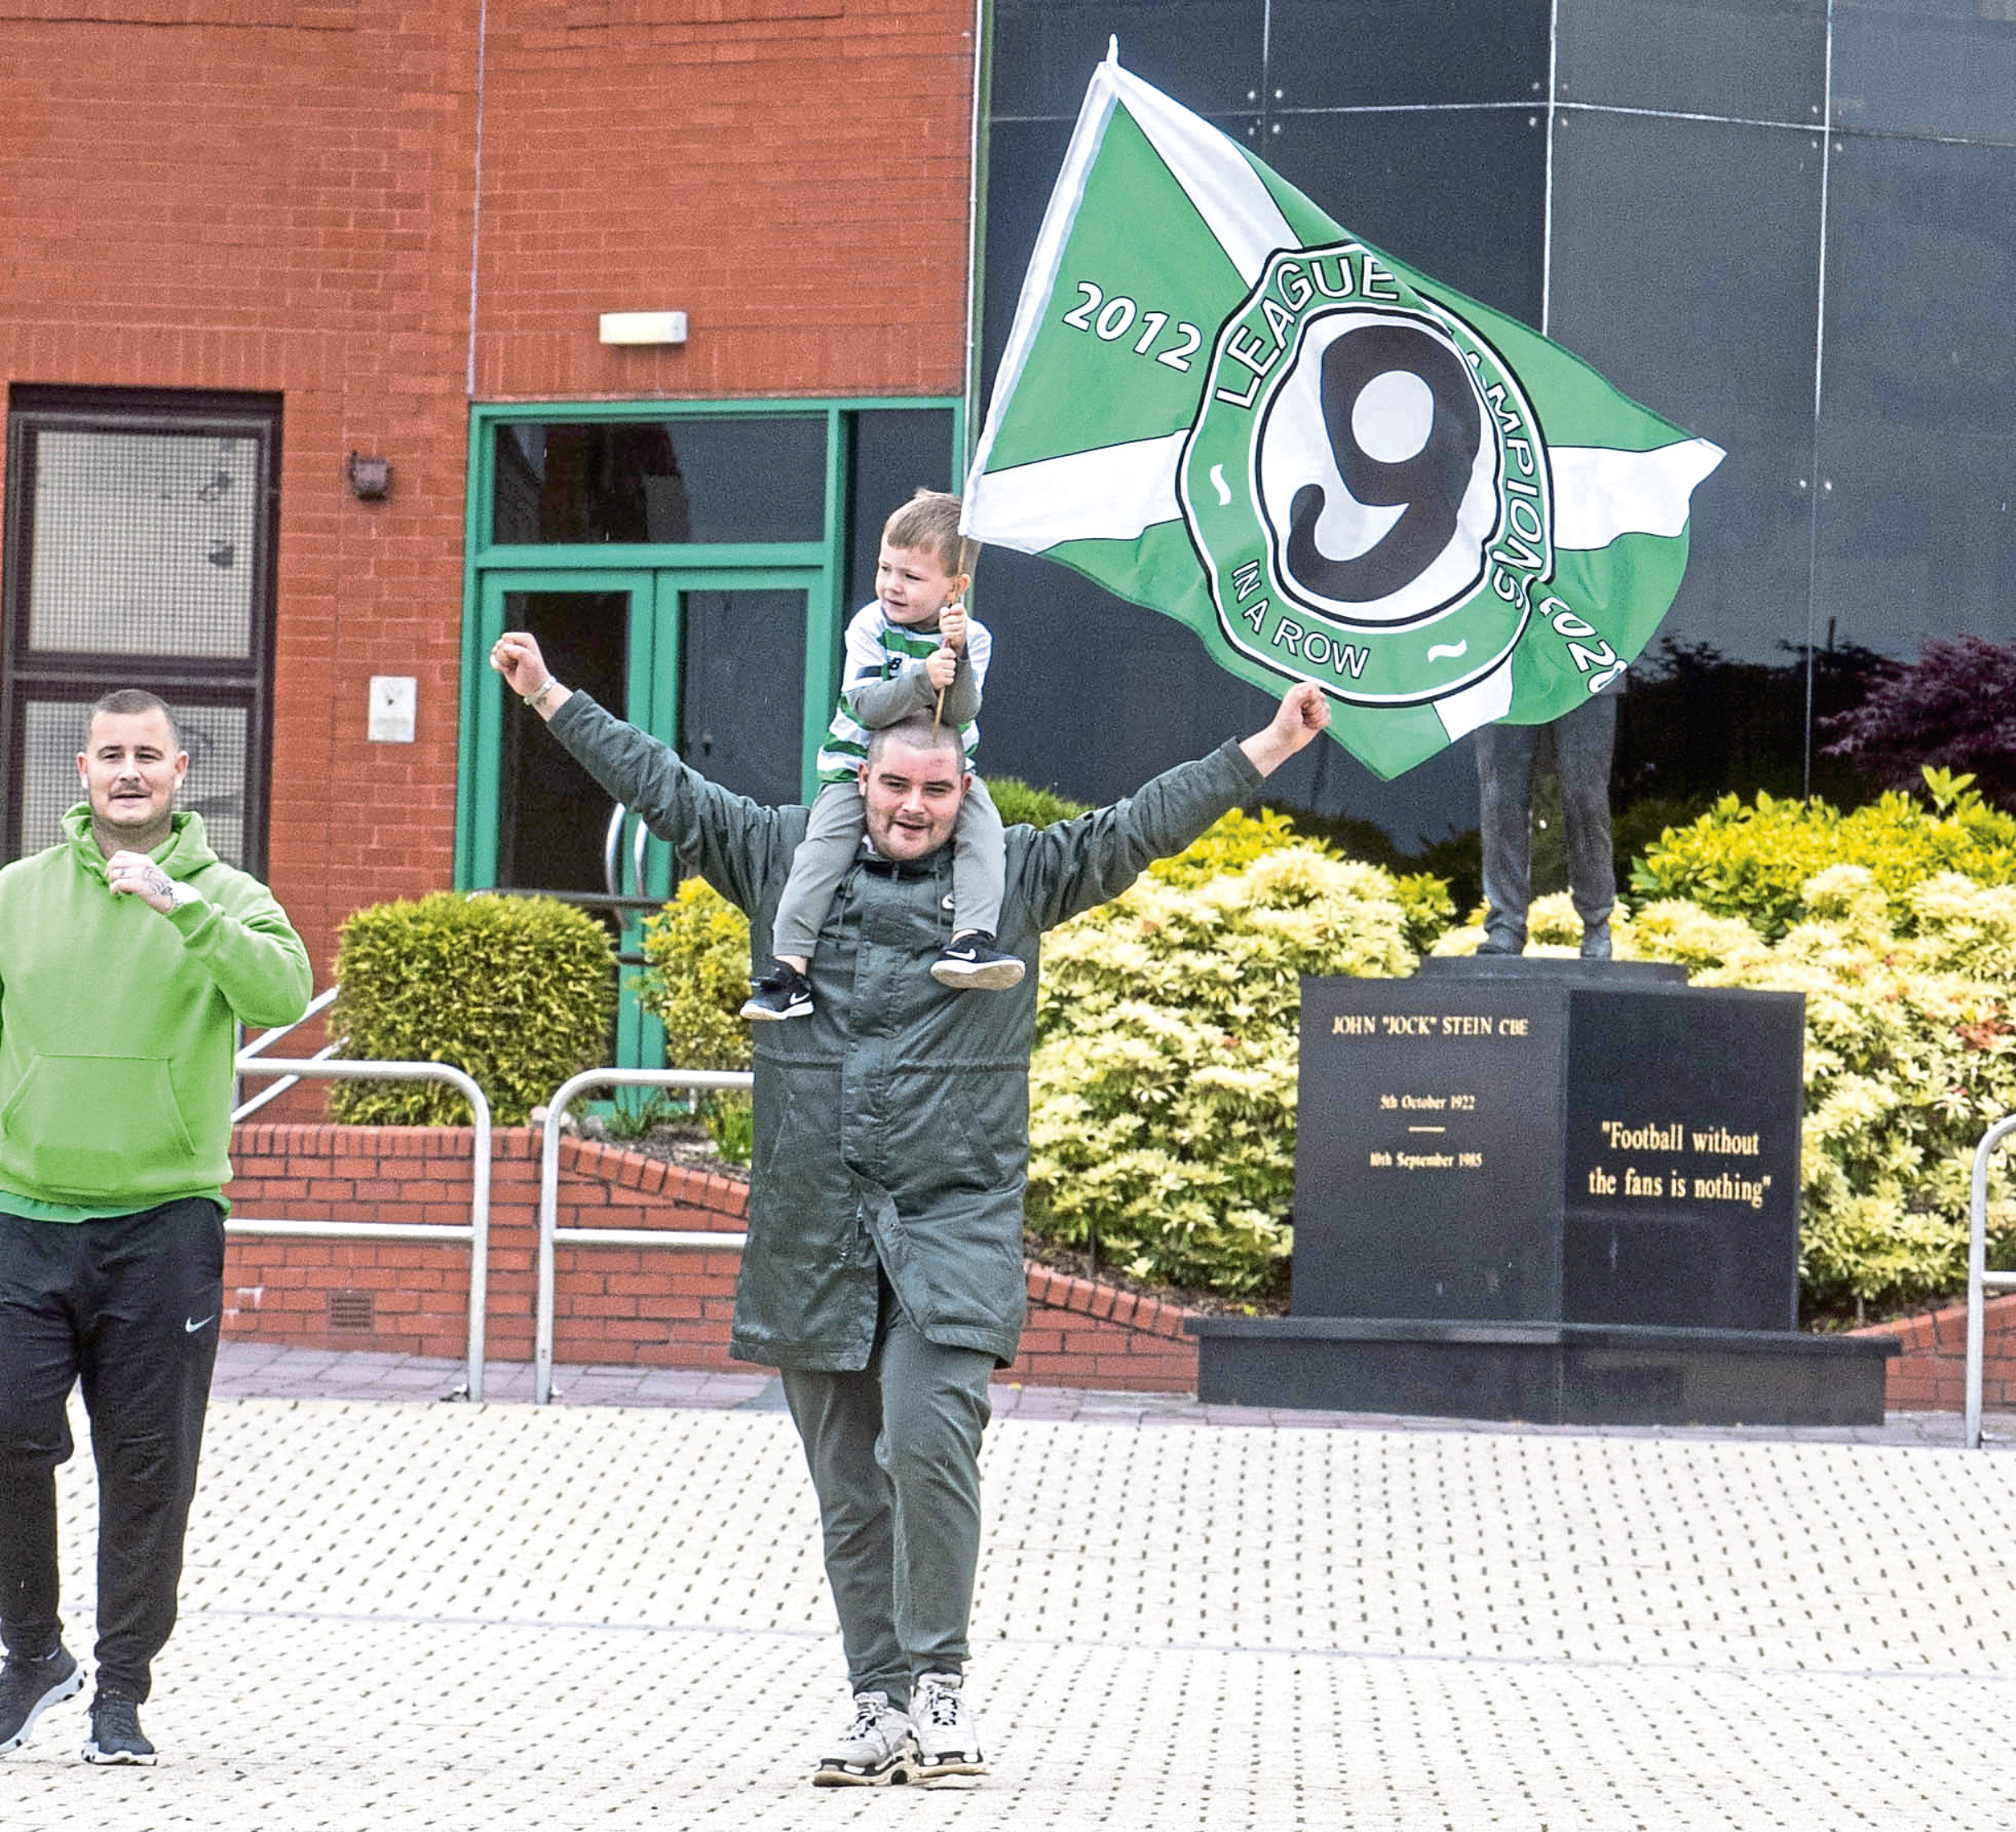 Celtic fans celebrate being awarded the Premiership title outside Parkhead yesterday.